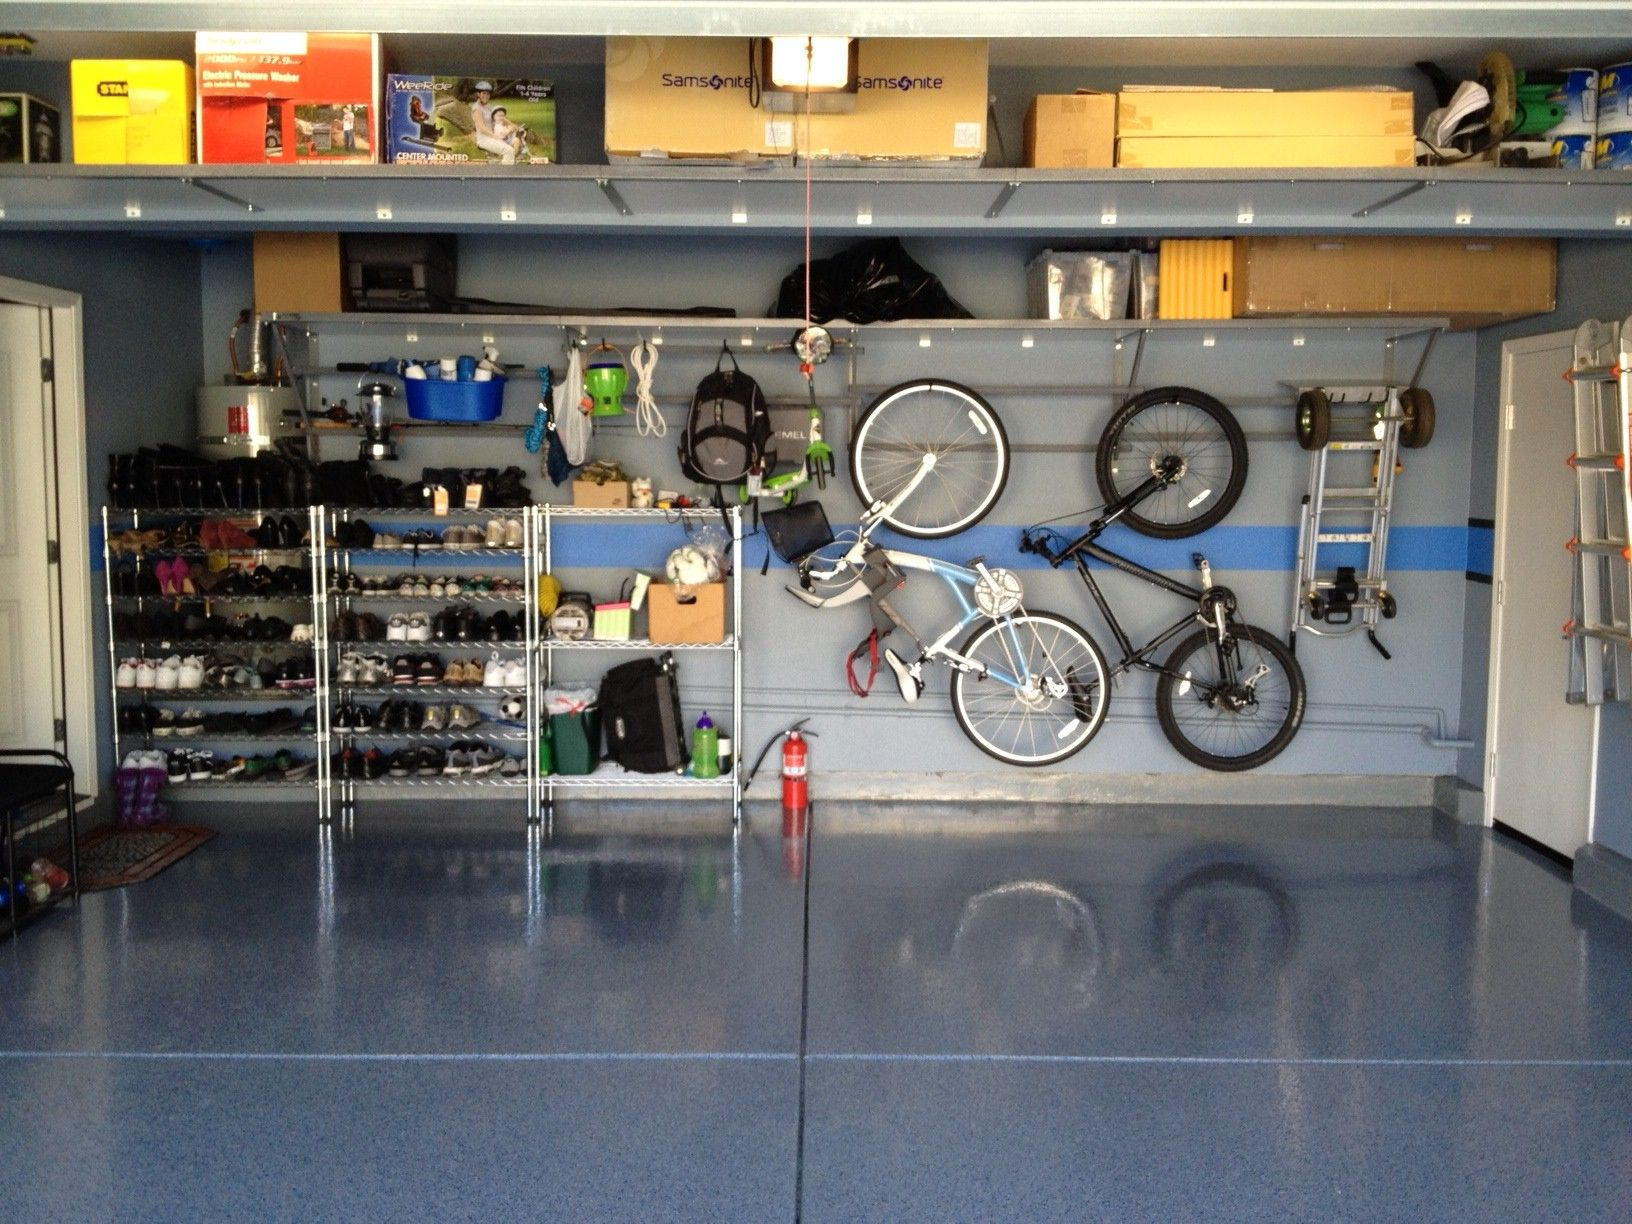 Perfect Garage Ideas | Bay Area Garage Shelving Ideas Gallery | Monkey Bars Central  Coast/Bay